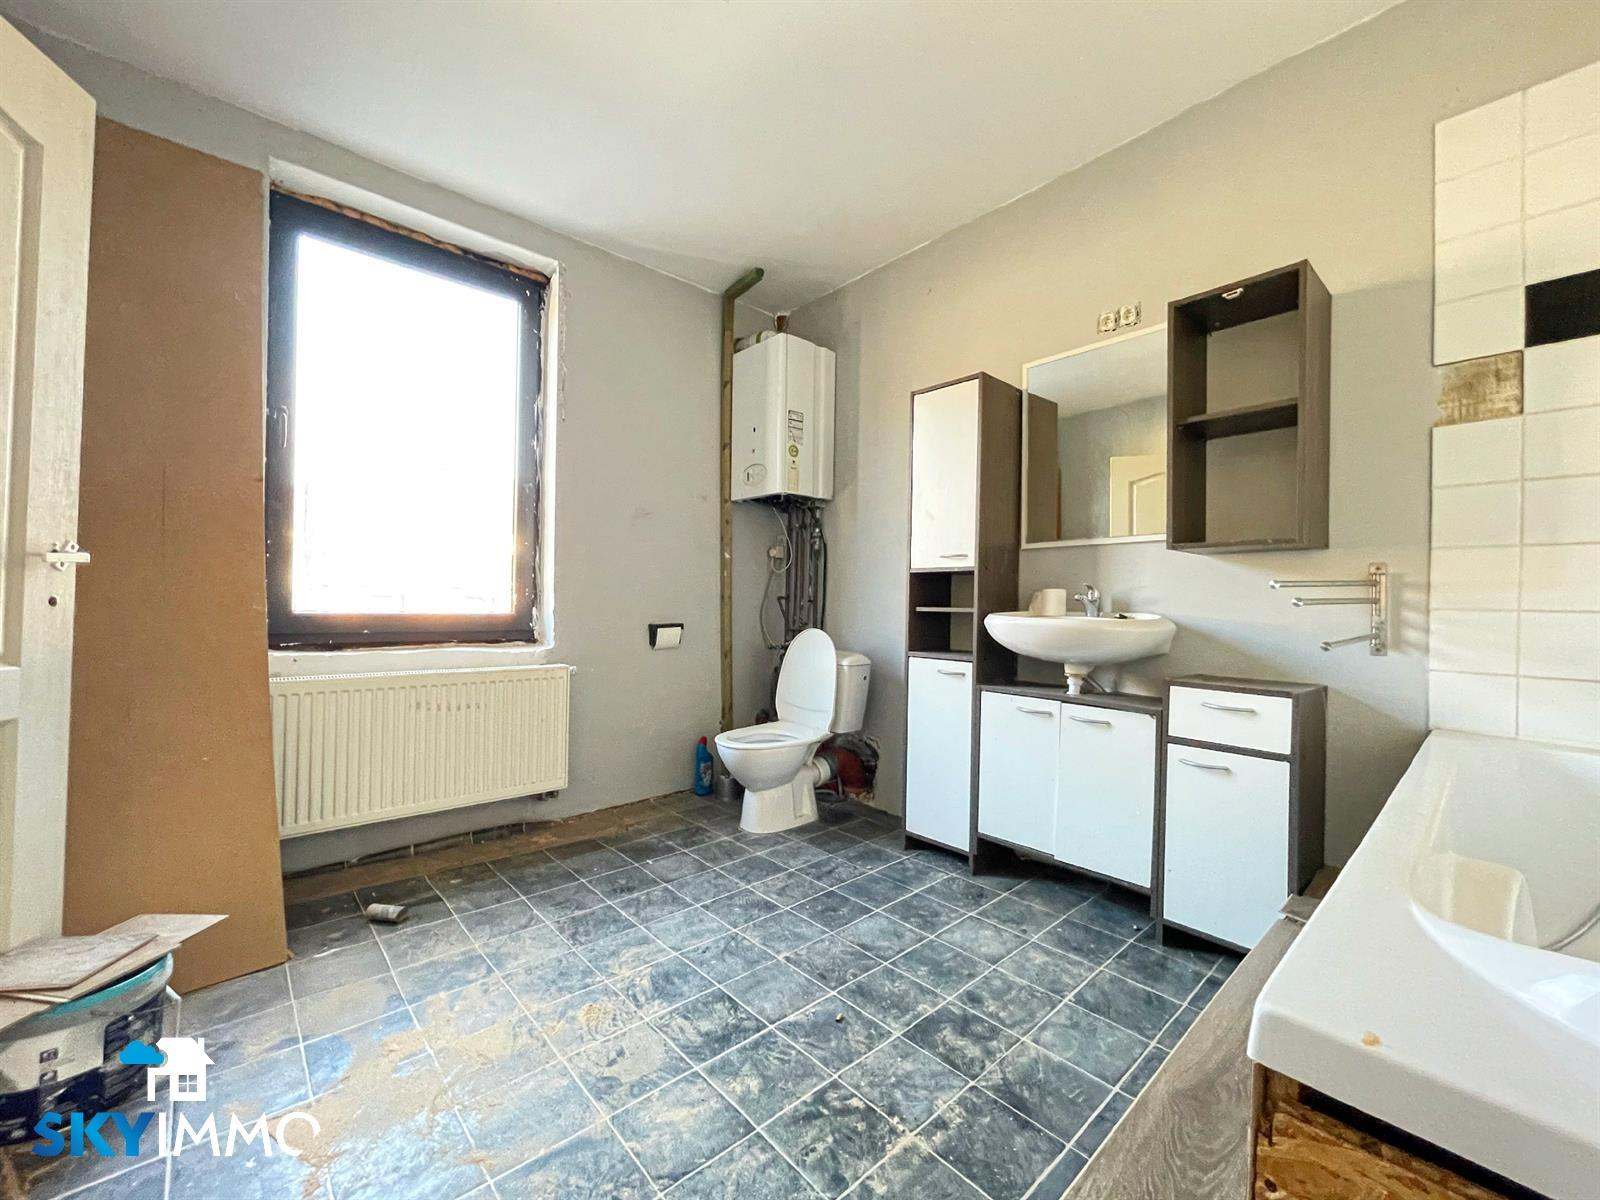 Huis - Flemalle - #4421147-6